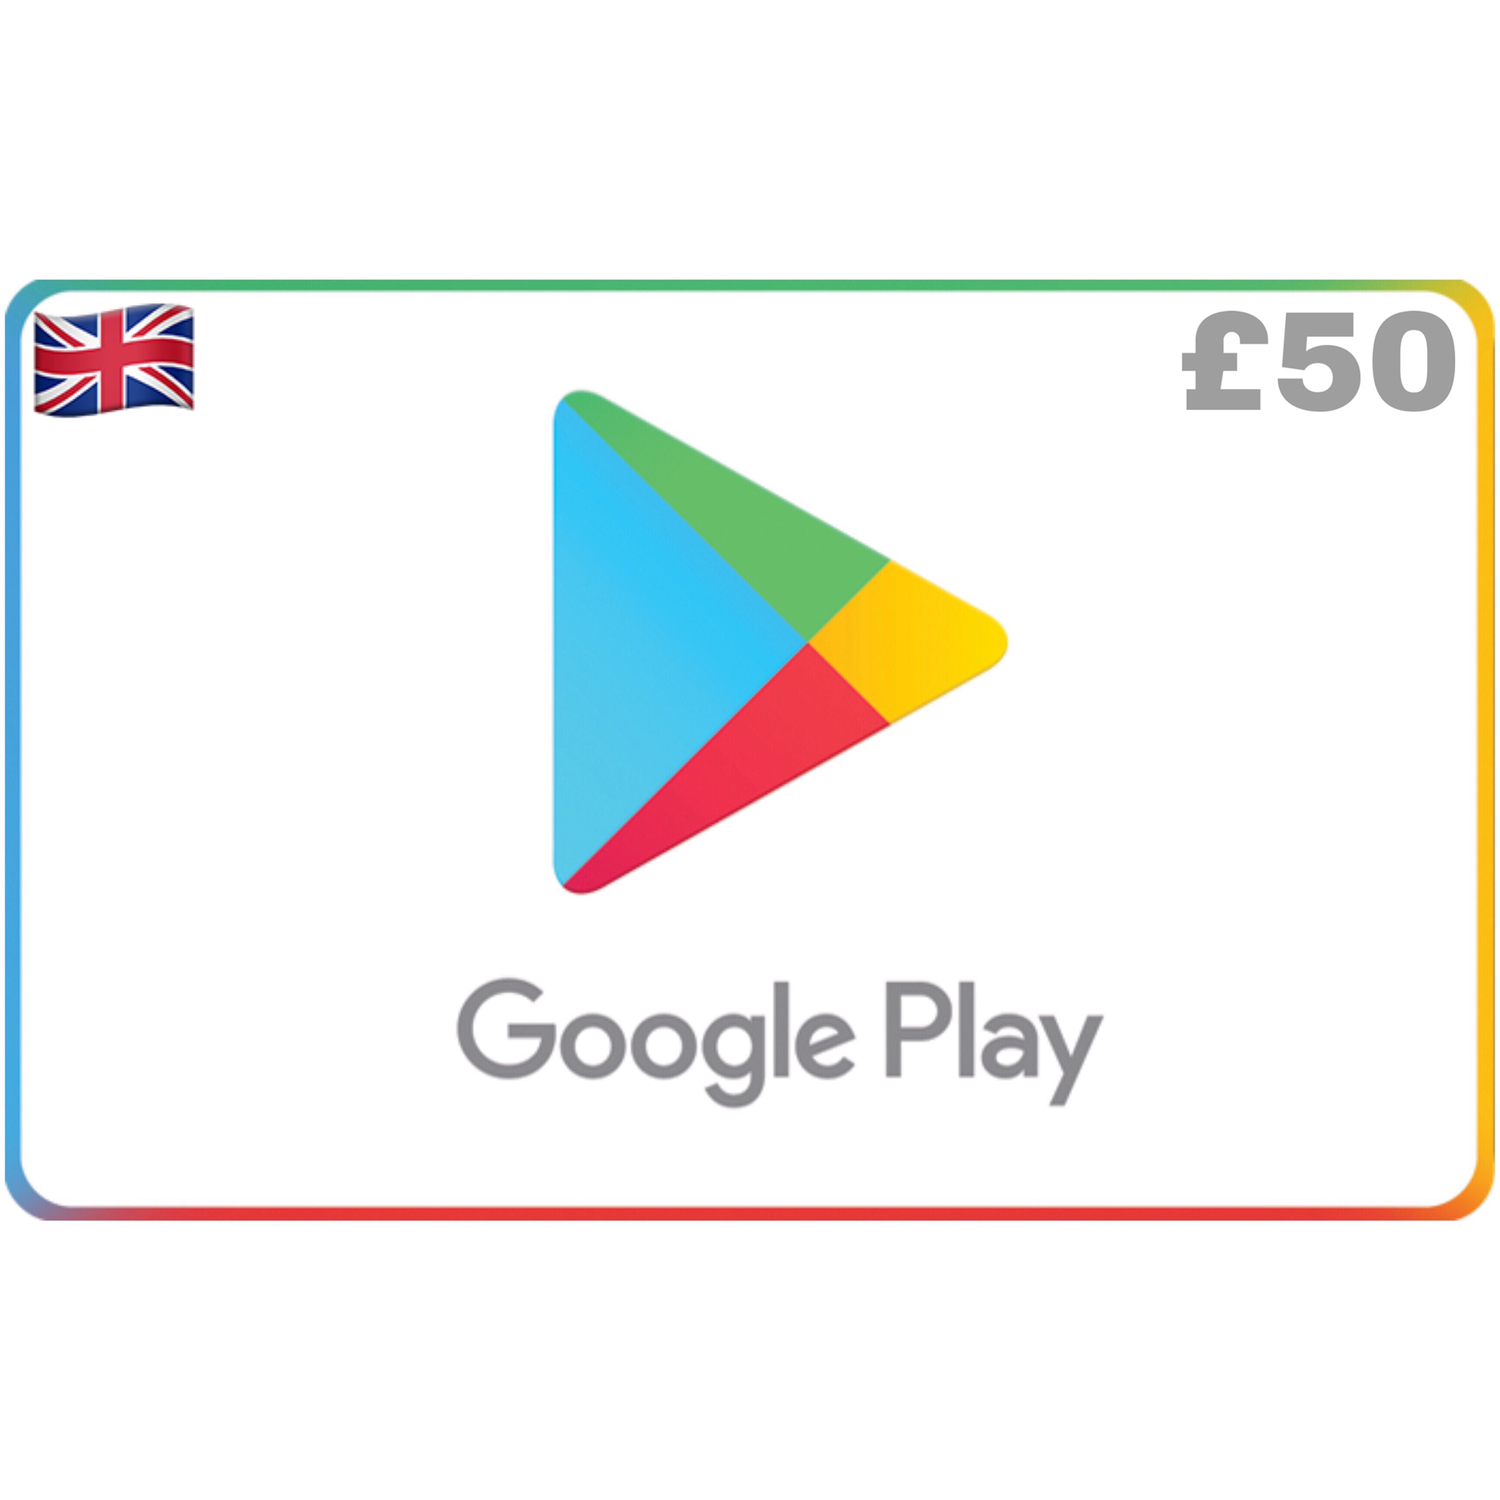 Google Play UK £50